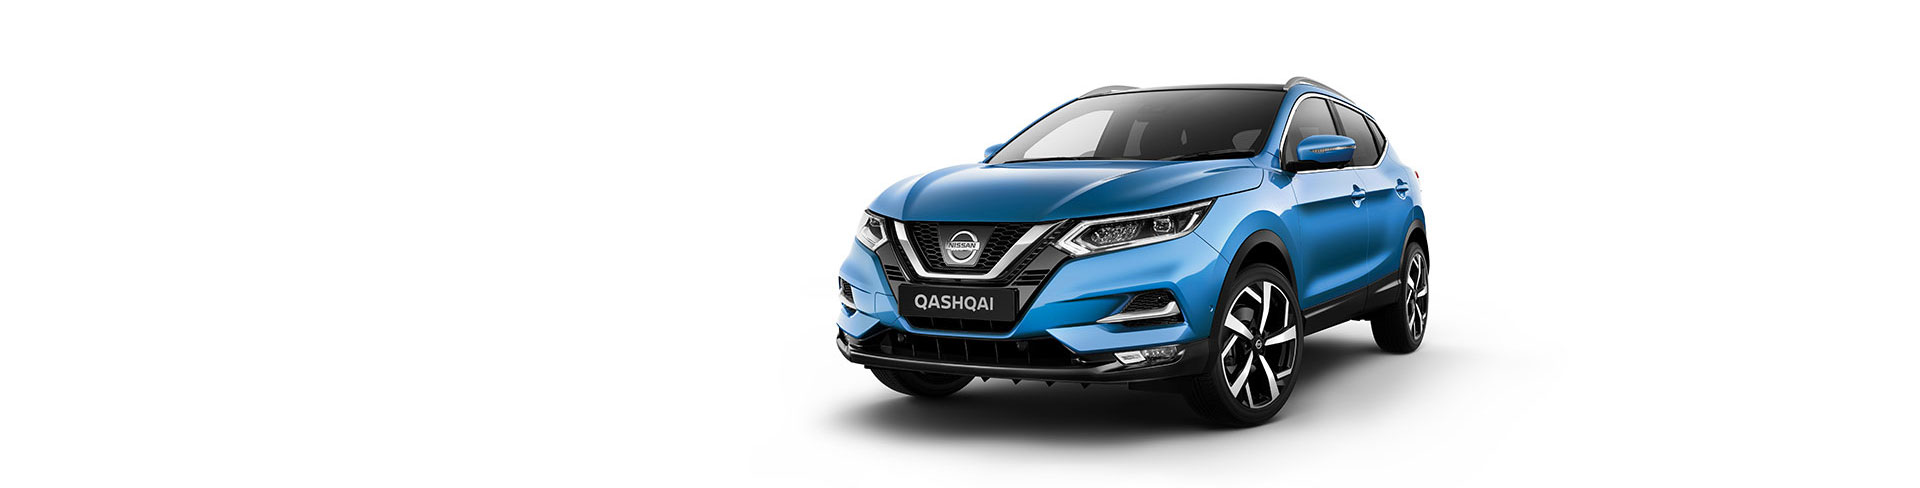 "<div class=""top-left""> <h1 class=""text-black"">NISSAN QASHQAI </h1><h3 class=""text-black"">TECHNOLOGY THAT GIVES YOU THE EDGE </h3> <div class=""button-container""><a href=/specials>Find out more</a></div> </div>"